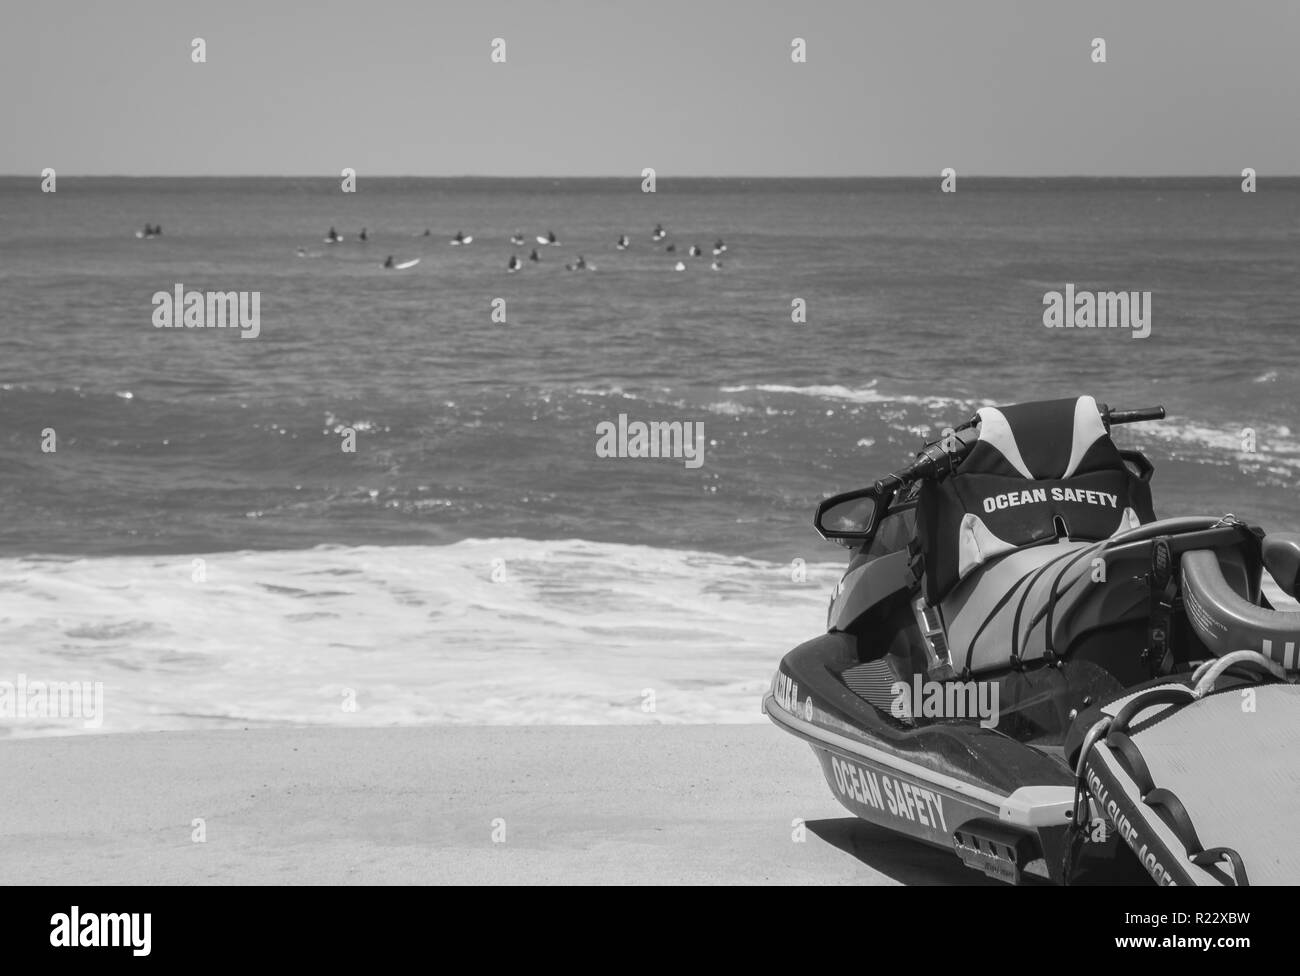 Black and white of a group of surfers off in the distance in the water as a lifeguard jetski sits on the beach that reads ocean safety ready to be cal - Stock Image